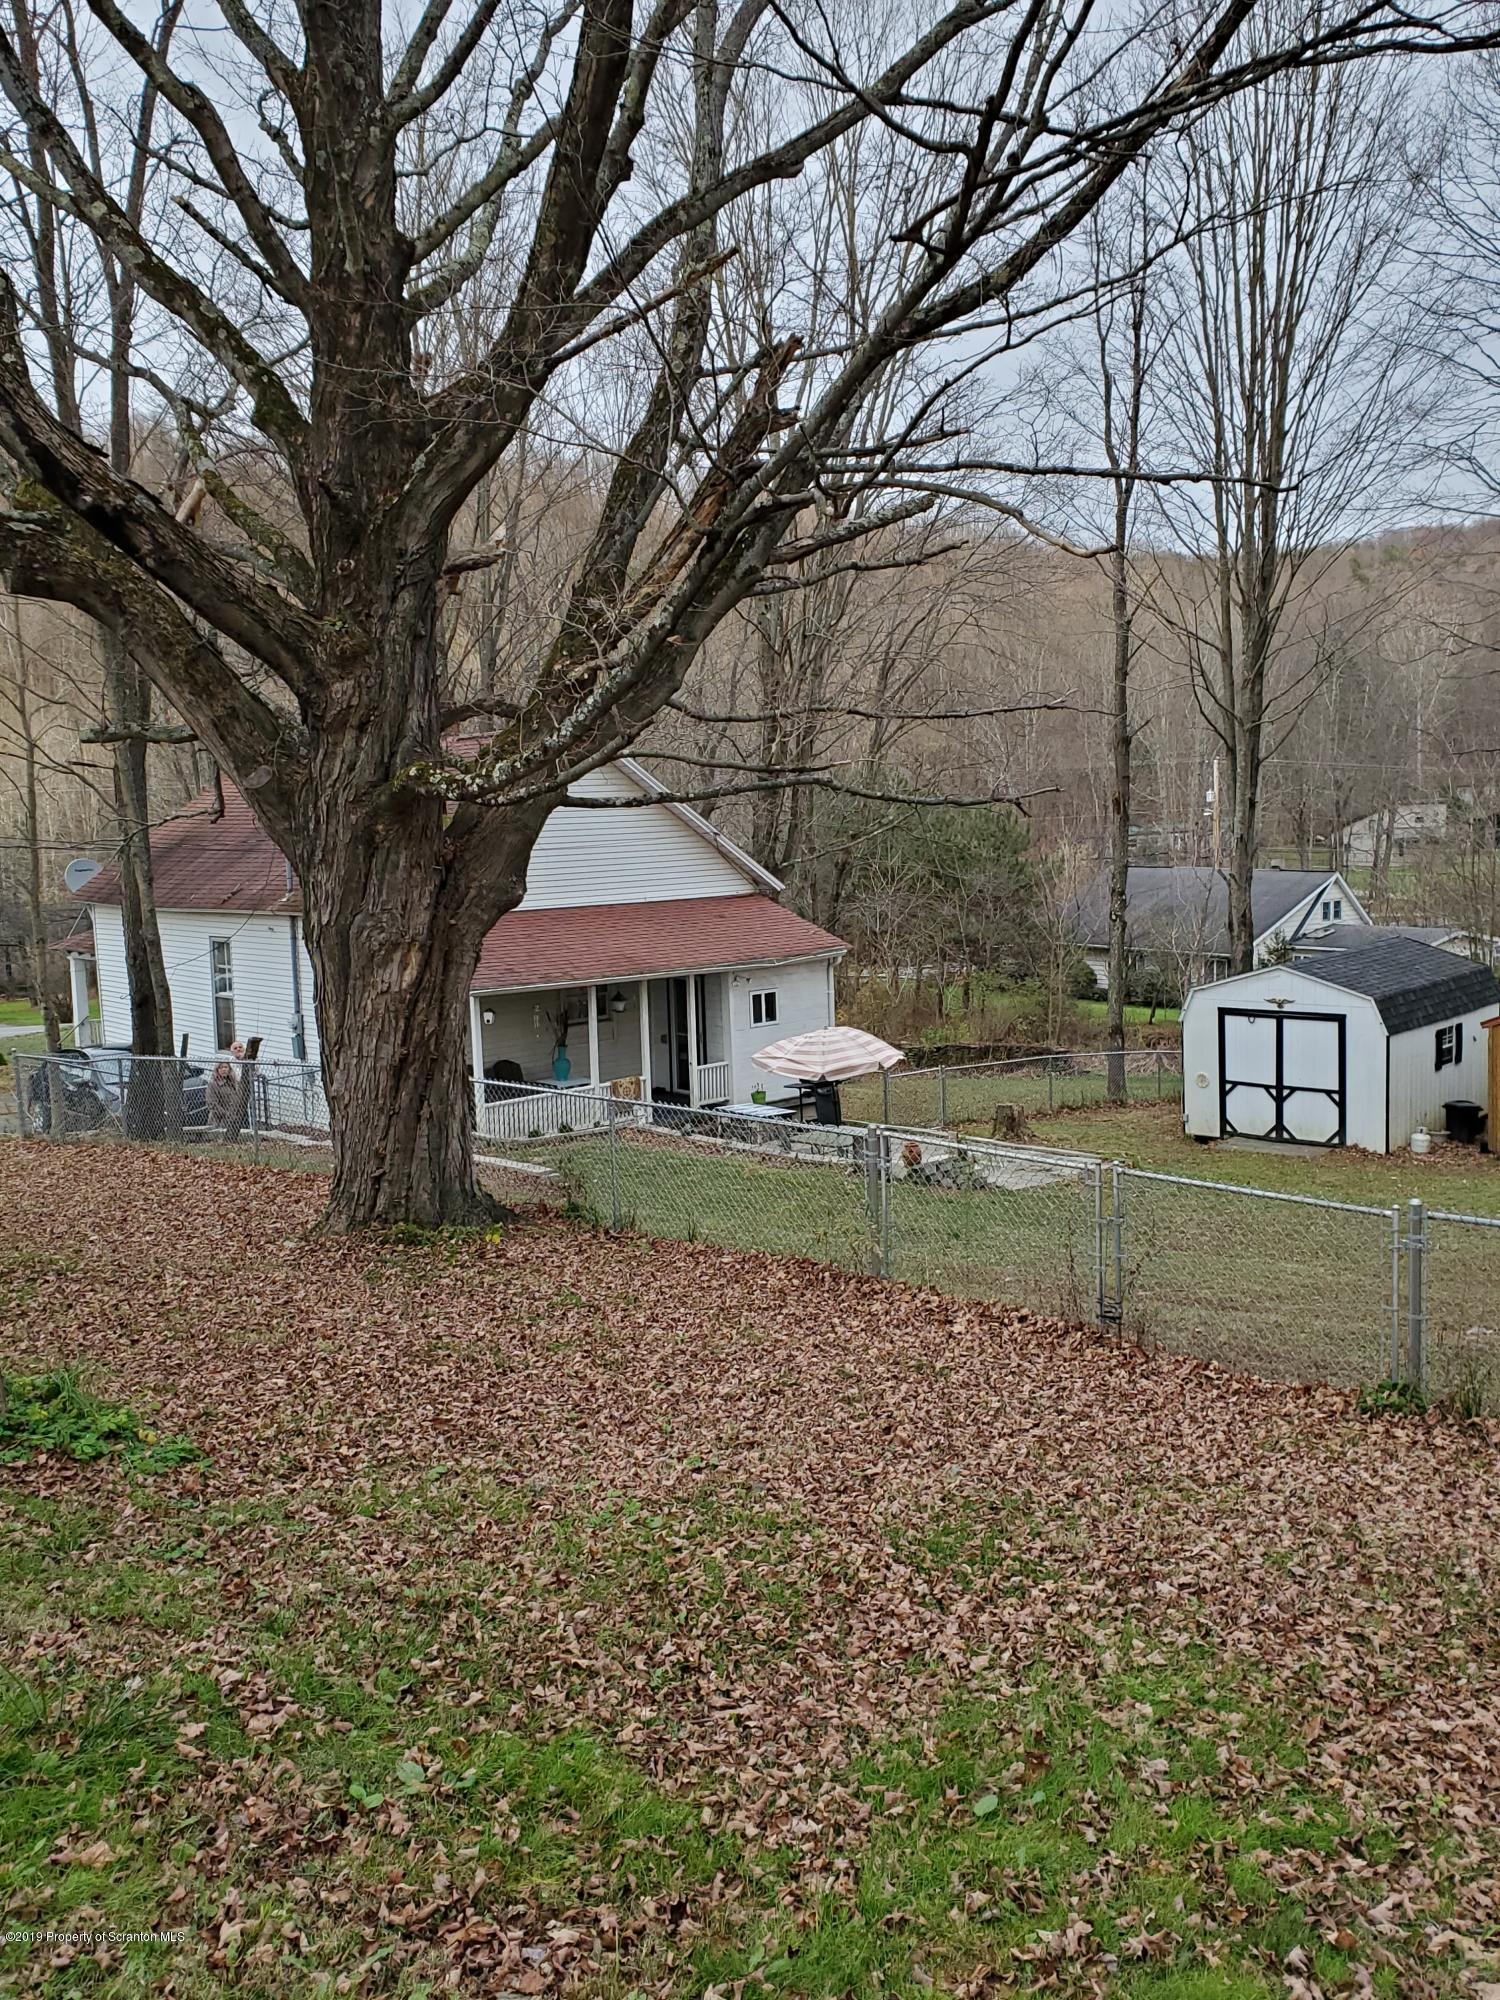 248 Shields Rd, Scott Twp, Pennsylvania 18447, 2 Bedrooms Bedrooms, 5 Rooms Rooms,1 BathroomBathrooms,Single Family,For Sale,Shields,19-5253